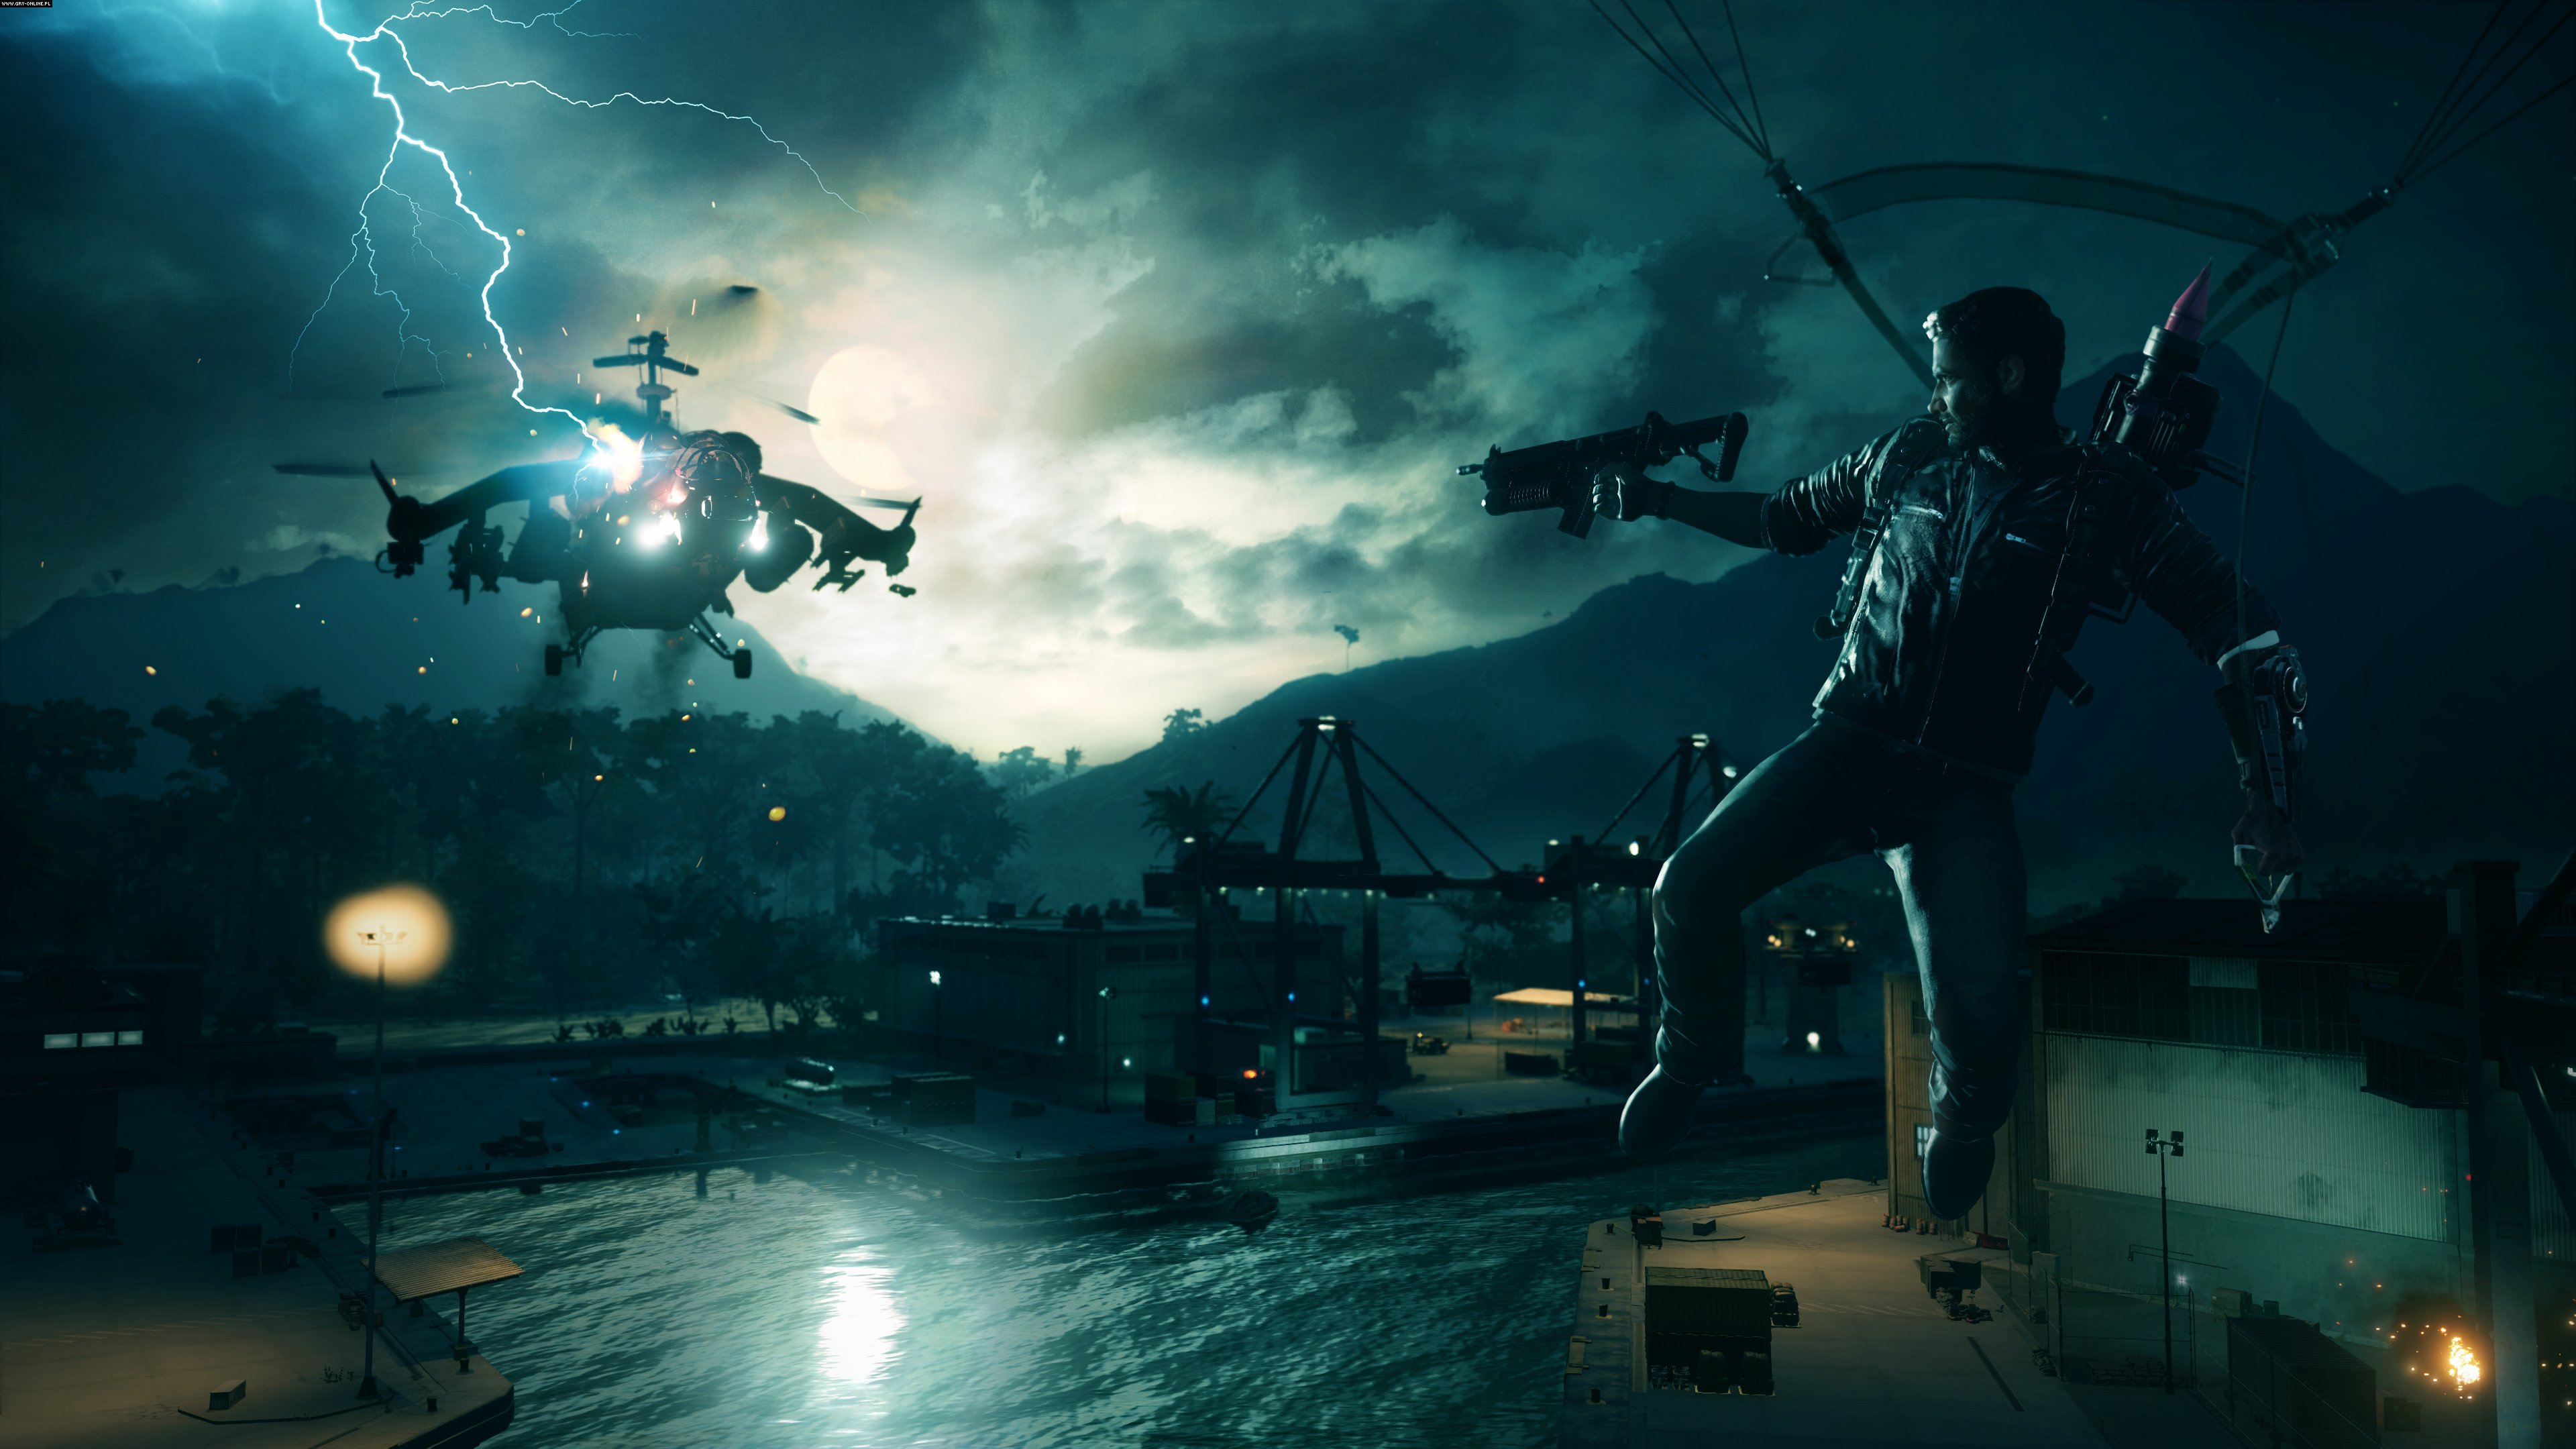 Just Cause 4 PC, PS4, XONE Games Image 12/24, Avalanche Studios, Square-Enix / Eidos